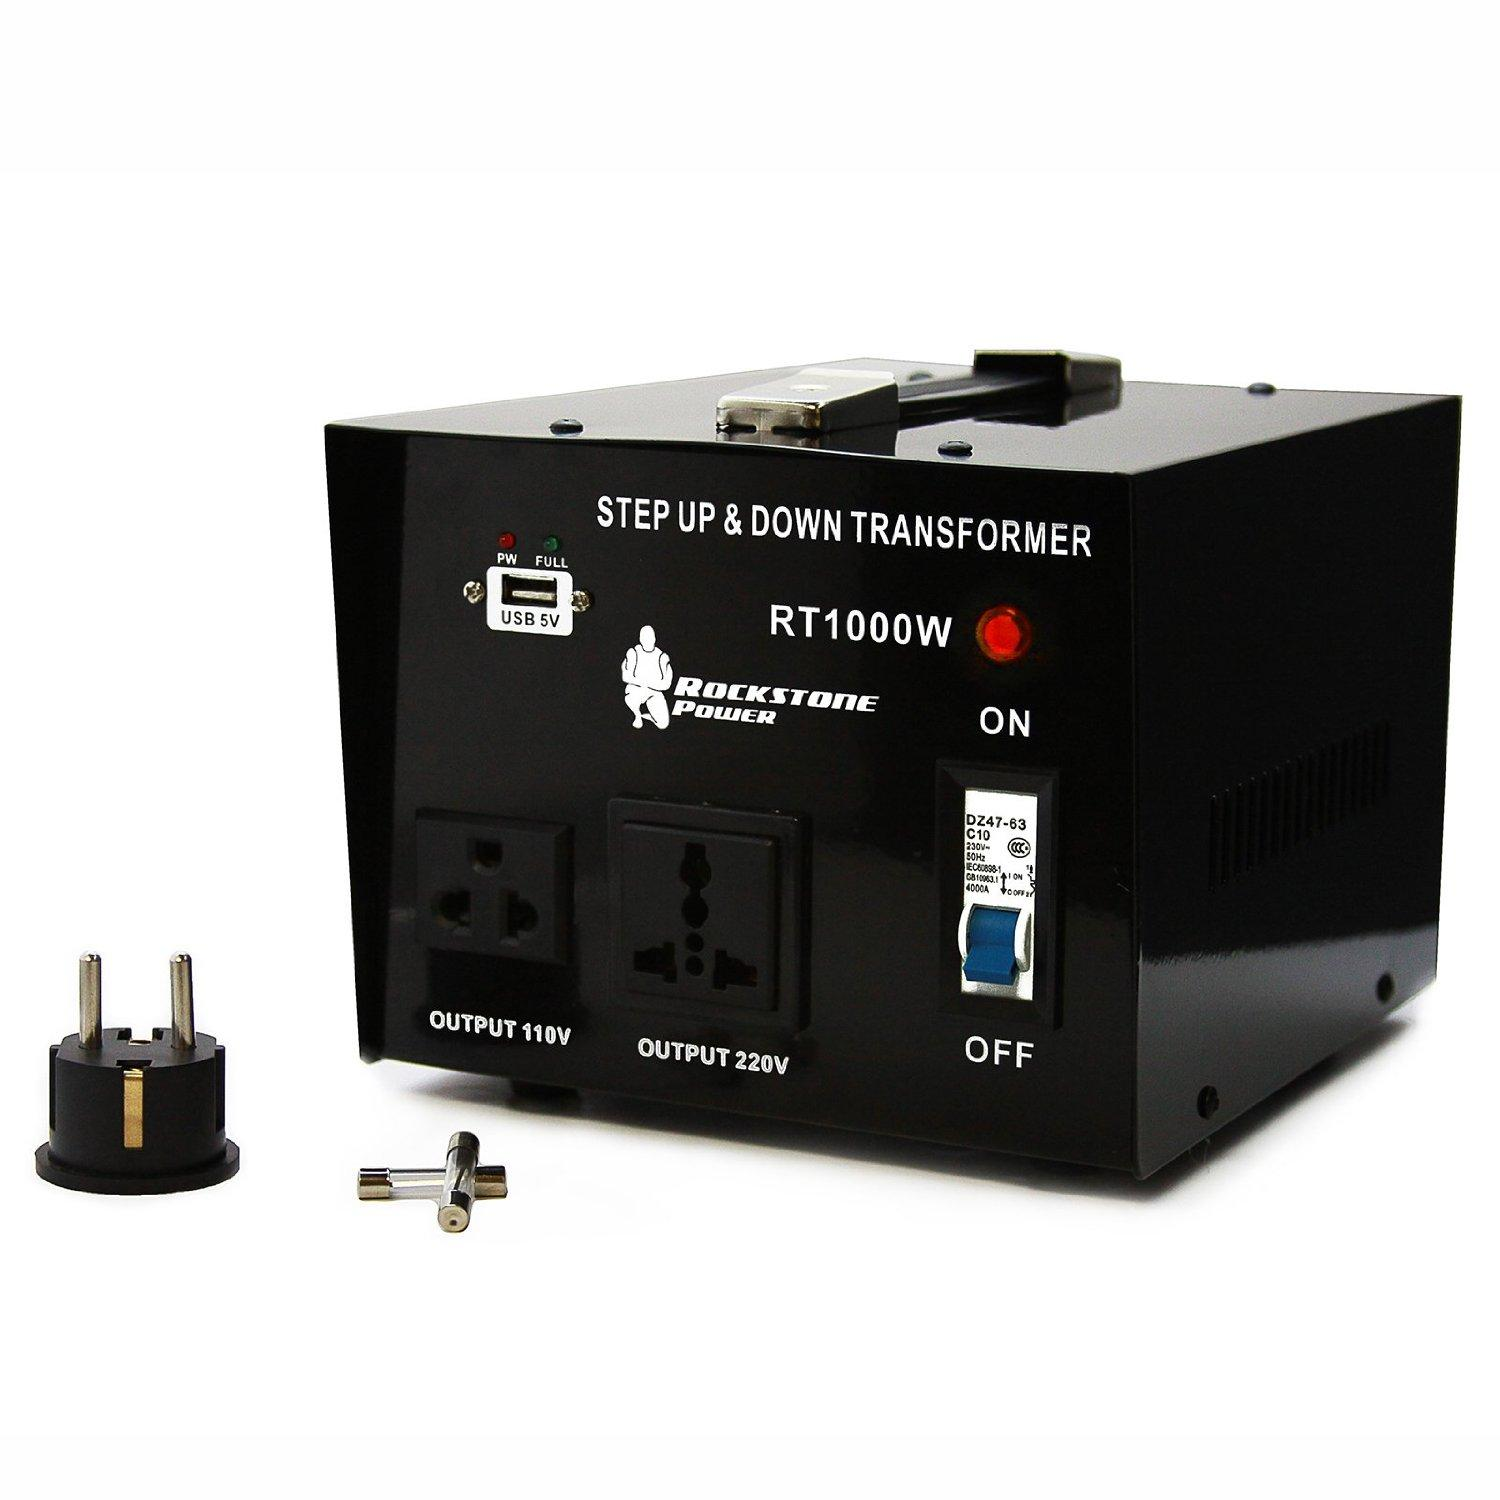 Convert 12 Volt To 110 additionally Browse moreover Step Upstep Down Transformers besides Blog 702183da0102vf46 additionally 110v 220v 500w Or More Inverter Circuit. on step up transformer 110 to 220